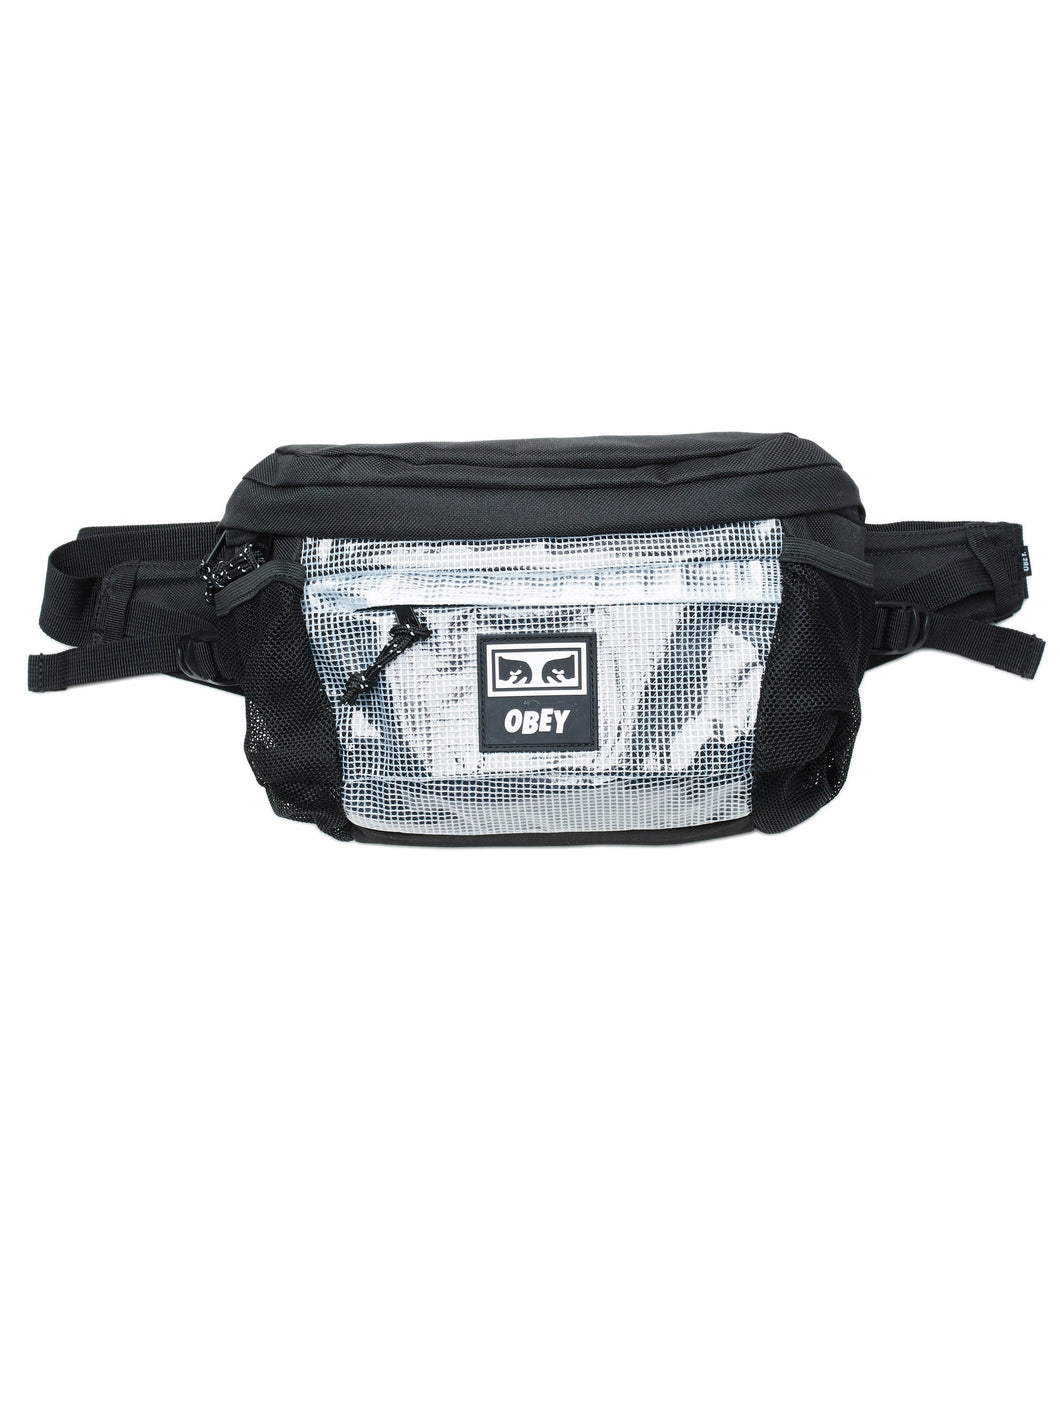 Obey Conditions Waist Bag II